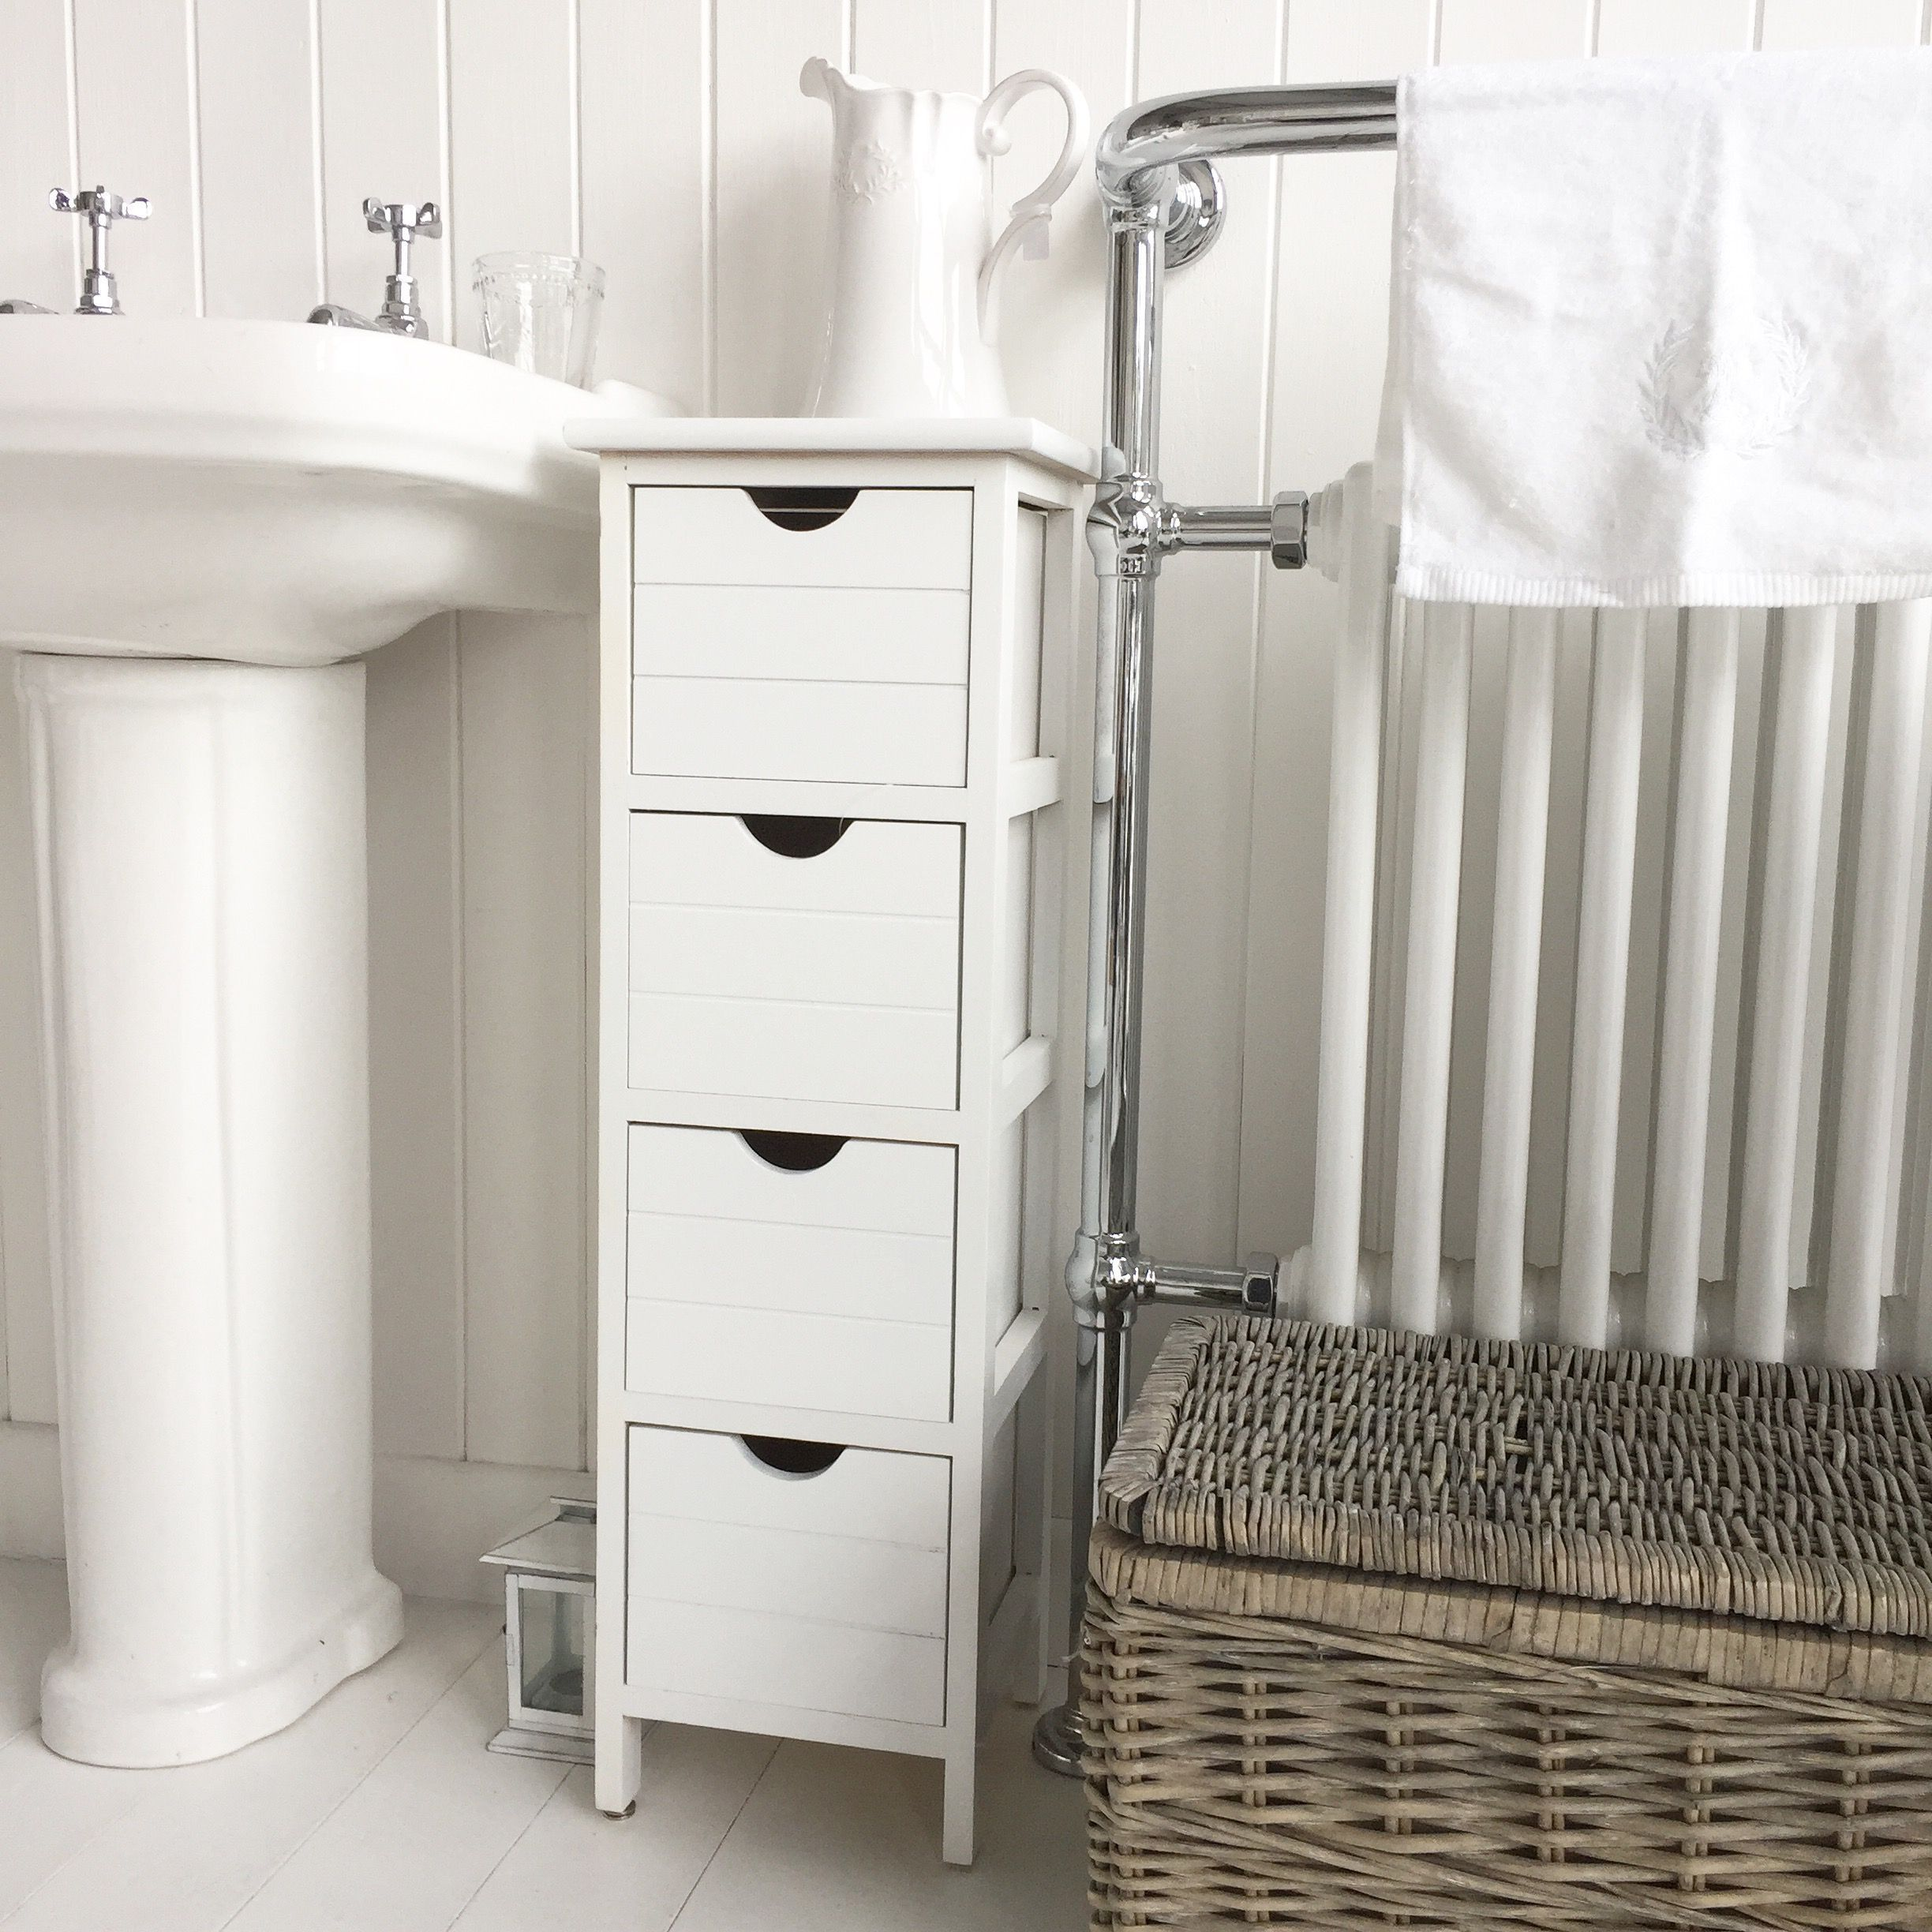 New Images Narrow Bathroom Furniture Thoughts An Excessive Amount Of Information Amou Bathroom Furniture Bathroom Furniture Storage White Bathroom Furniture